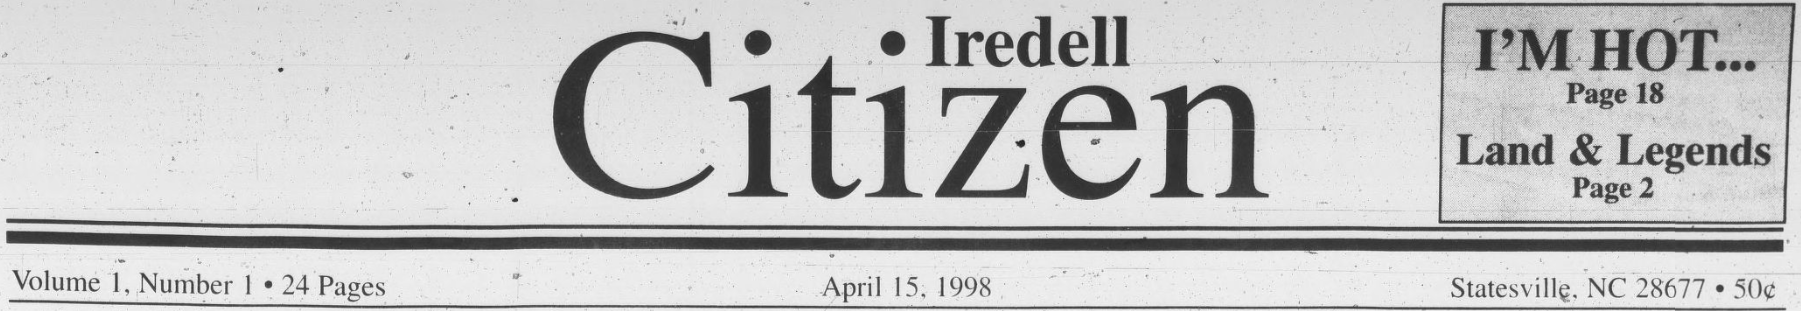 Complete Collection of the Iredell Citizen Now Available